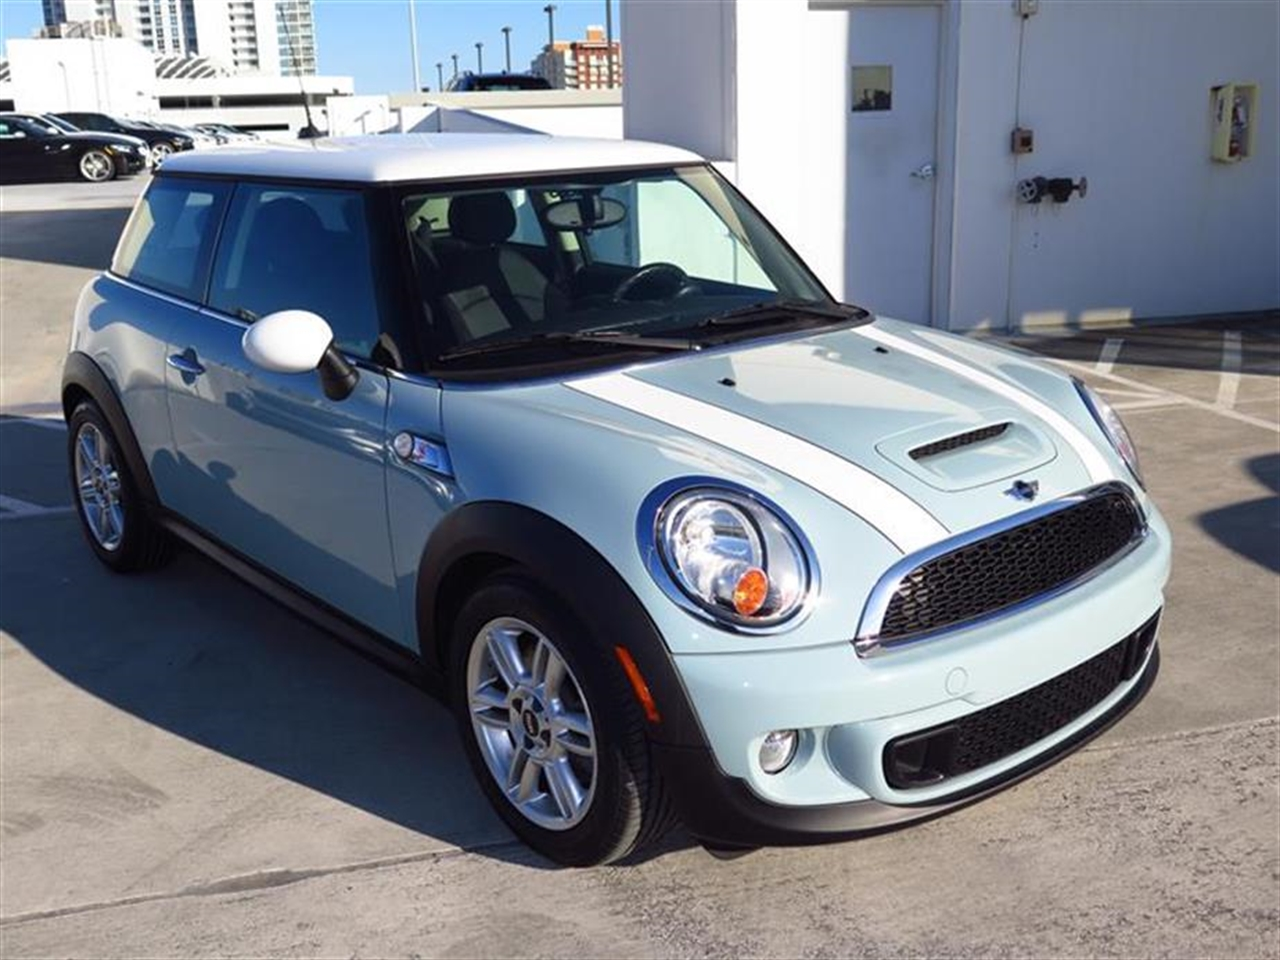 2011 MINI COOPER S 2dr Cpe S 28360 miles 1 rear cup holder 12V auxiliary pwr outlet in cockpit